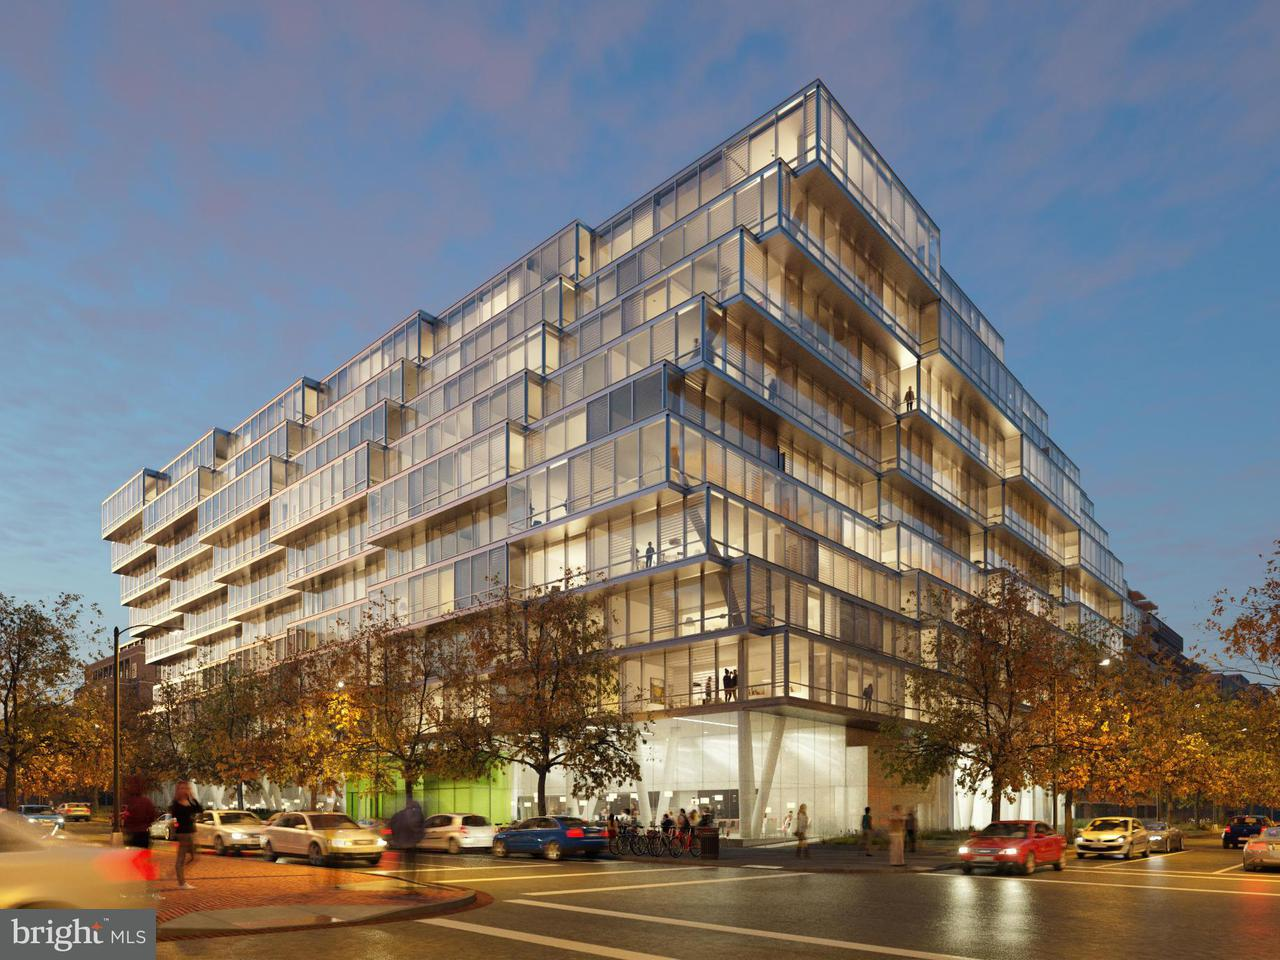 Condominium for Sale at 1111 24th St Nw #103 1111 24th St Nw #103 Washington, District Of Columbia 20037 United States